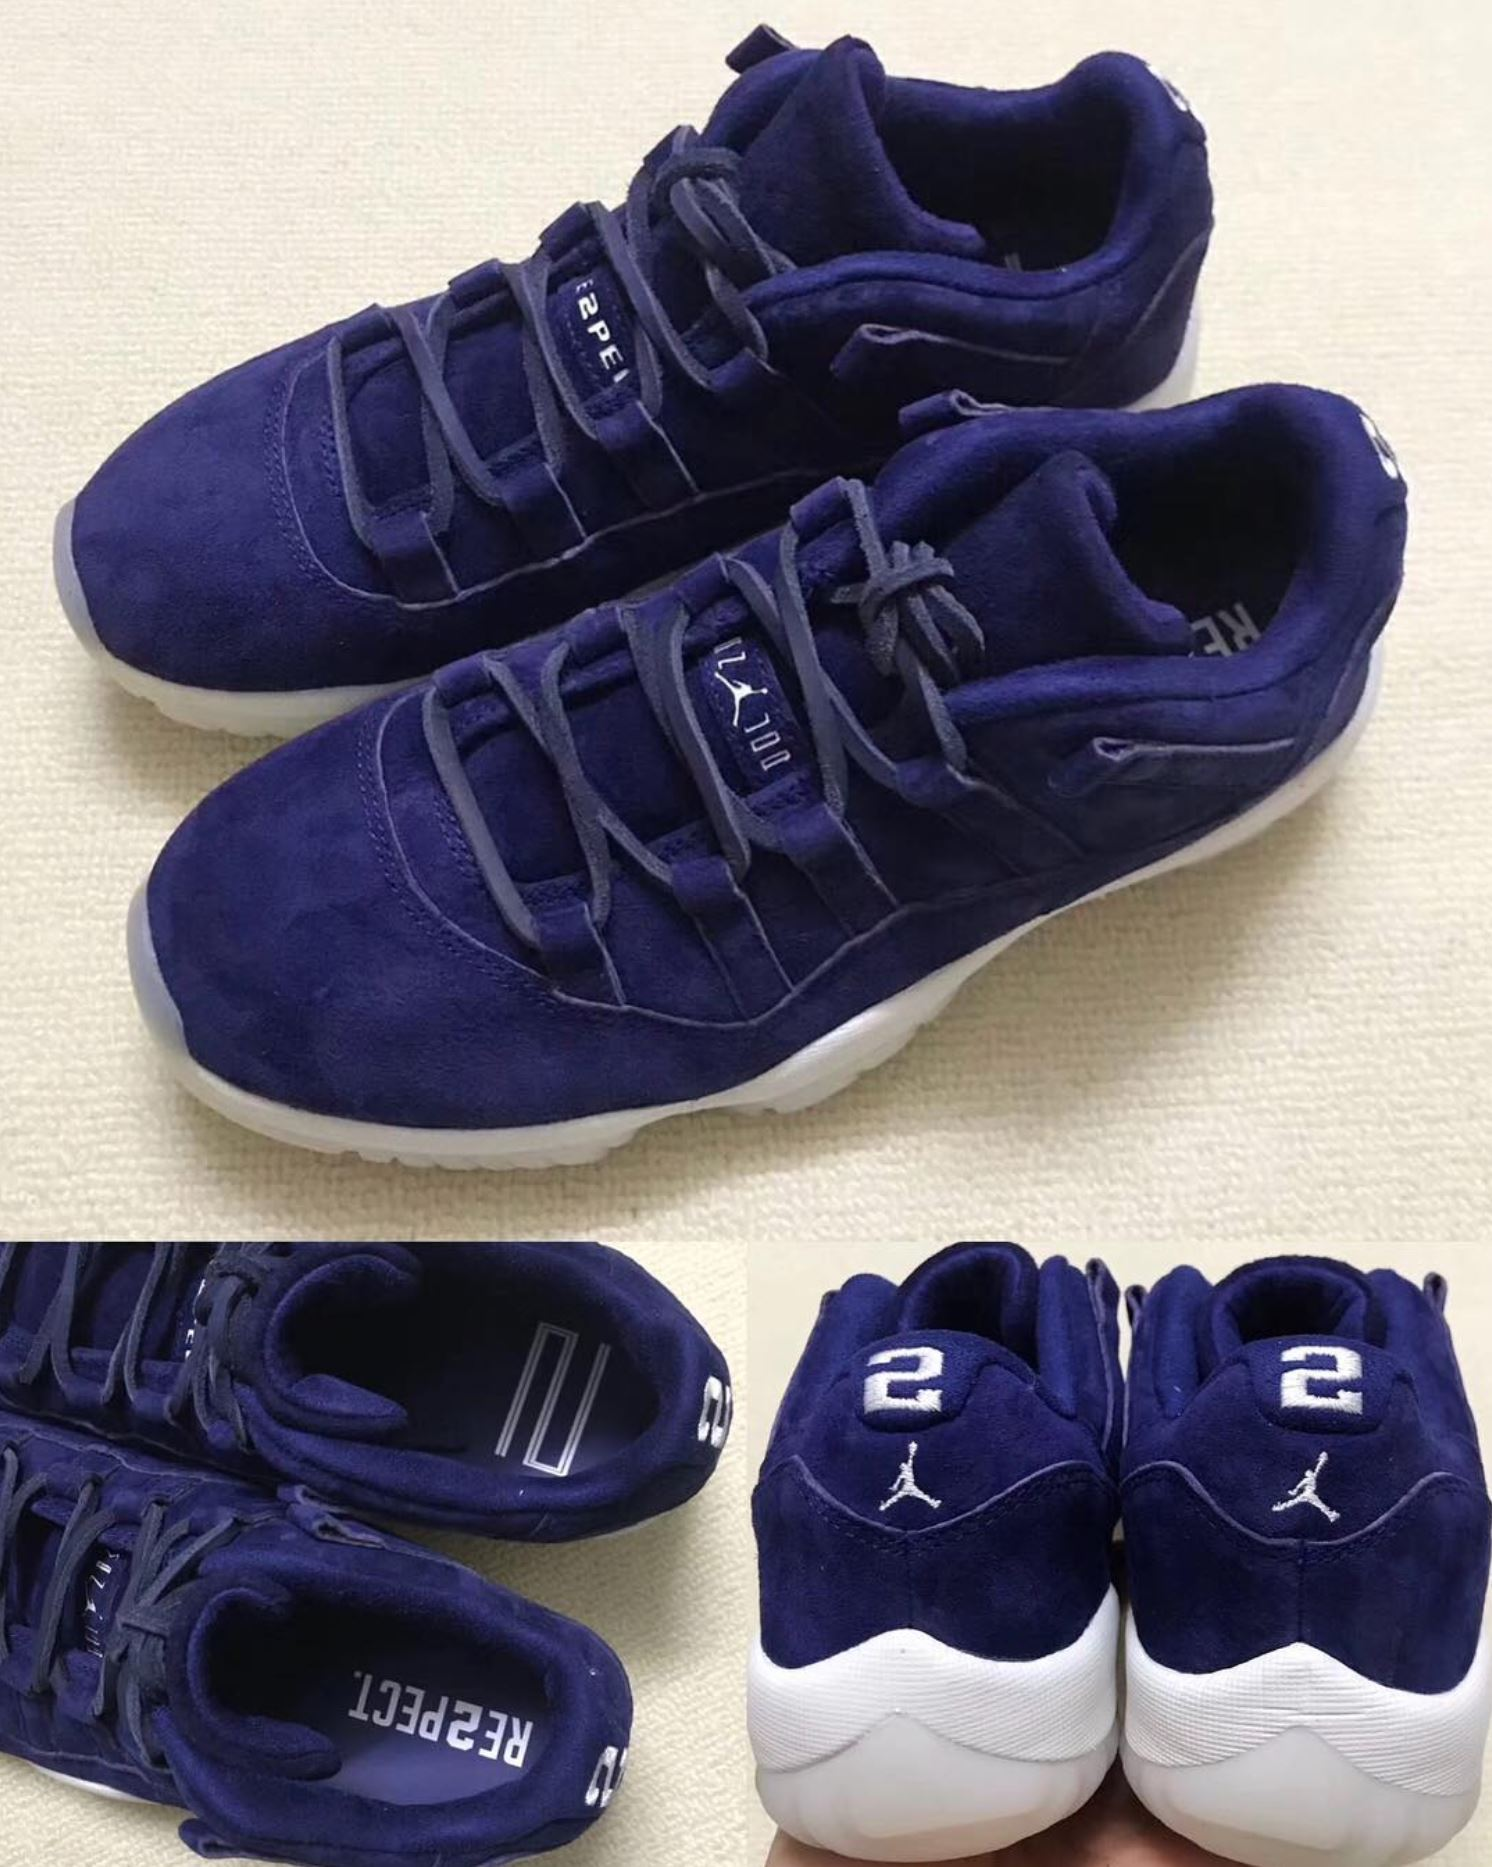 separation shoes 8bc72 22690 Expect the Air Jordan 11 Low 'RE2PECT' to Arrive in April ...